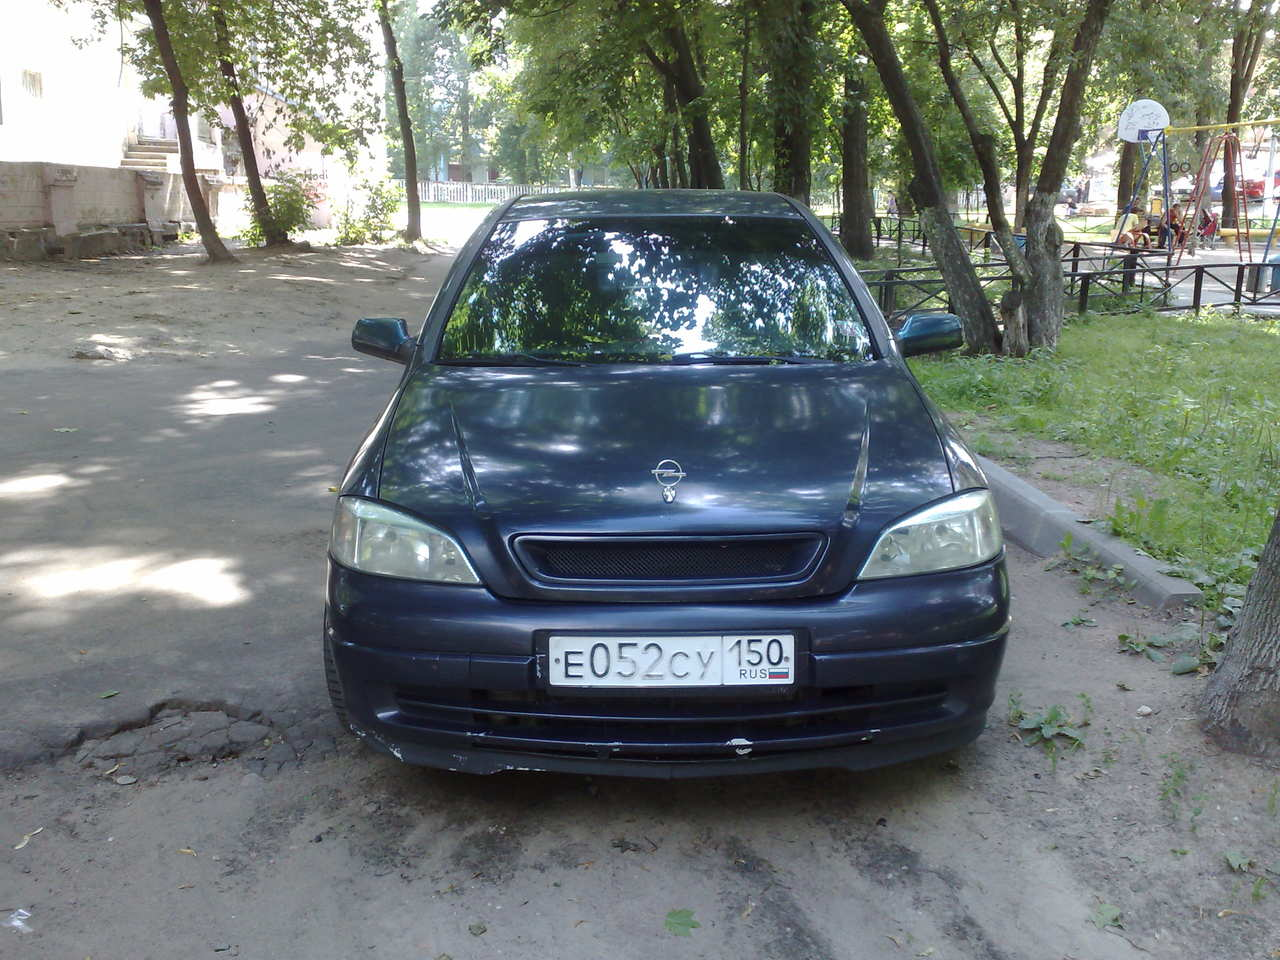 1999 opel astra photos 1 6 gasoline ff manual for sale. Black Bedroom Furniture Sets. Home Design Ideas